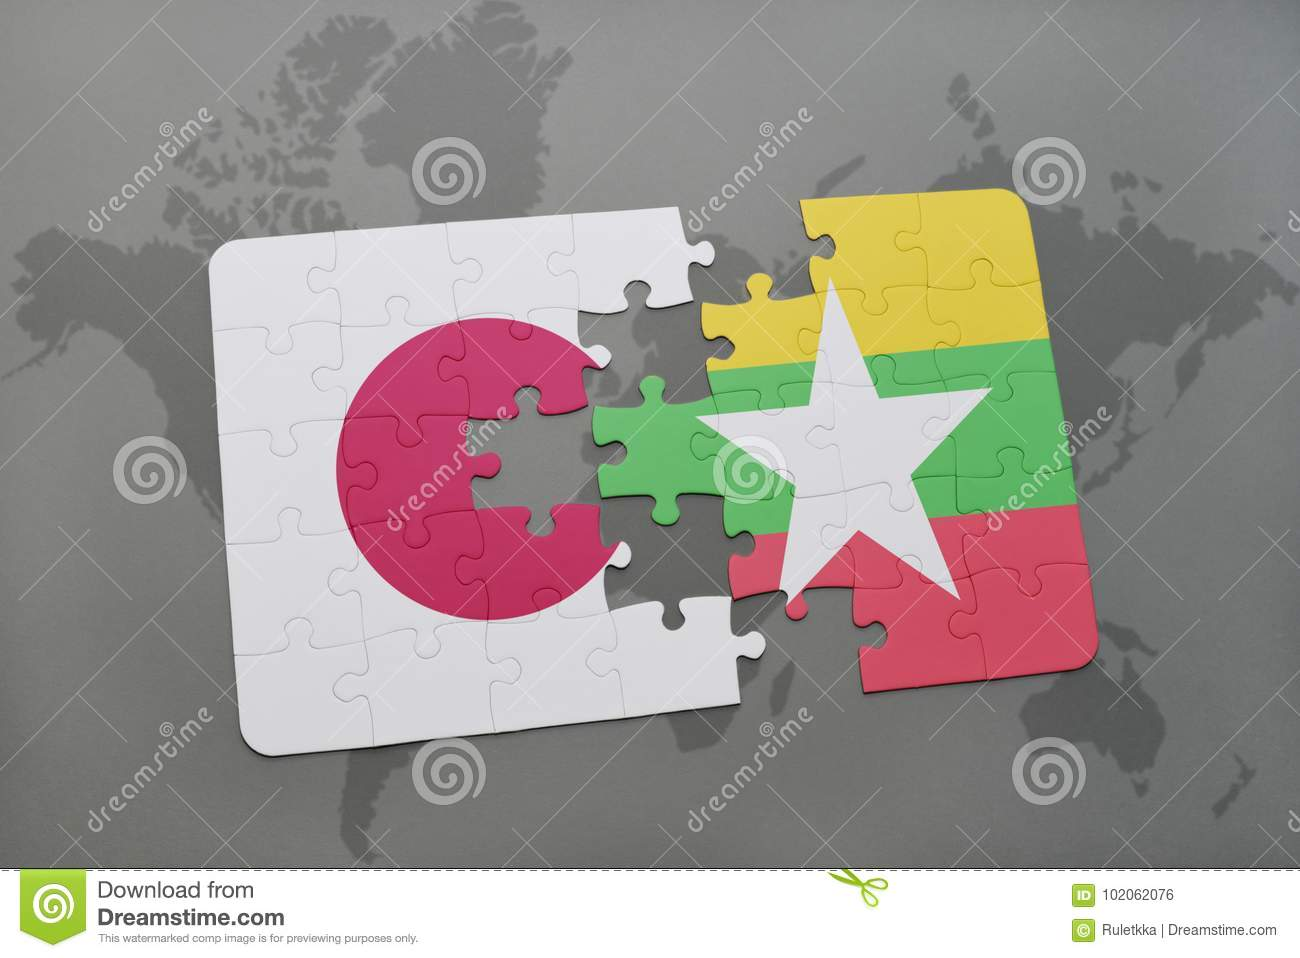 puzzle with the national flag of japan and myanmar on a world map background.